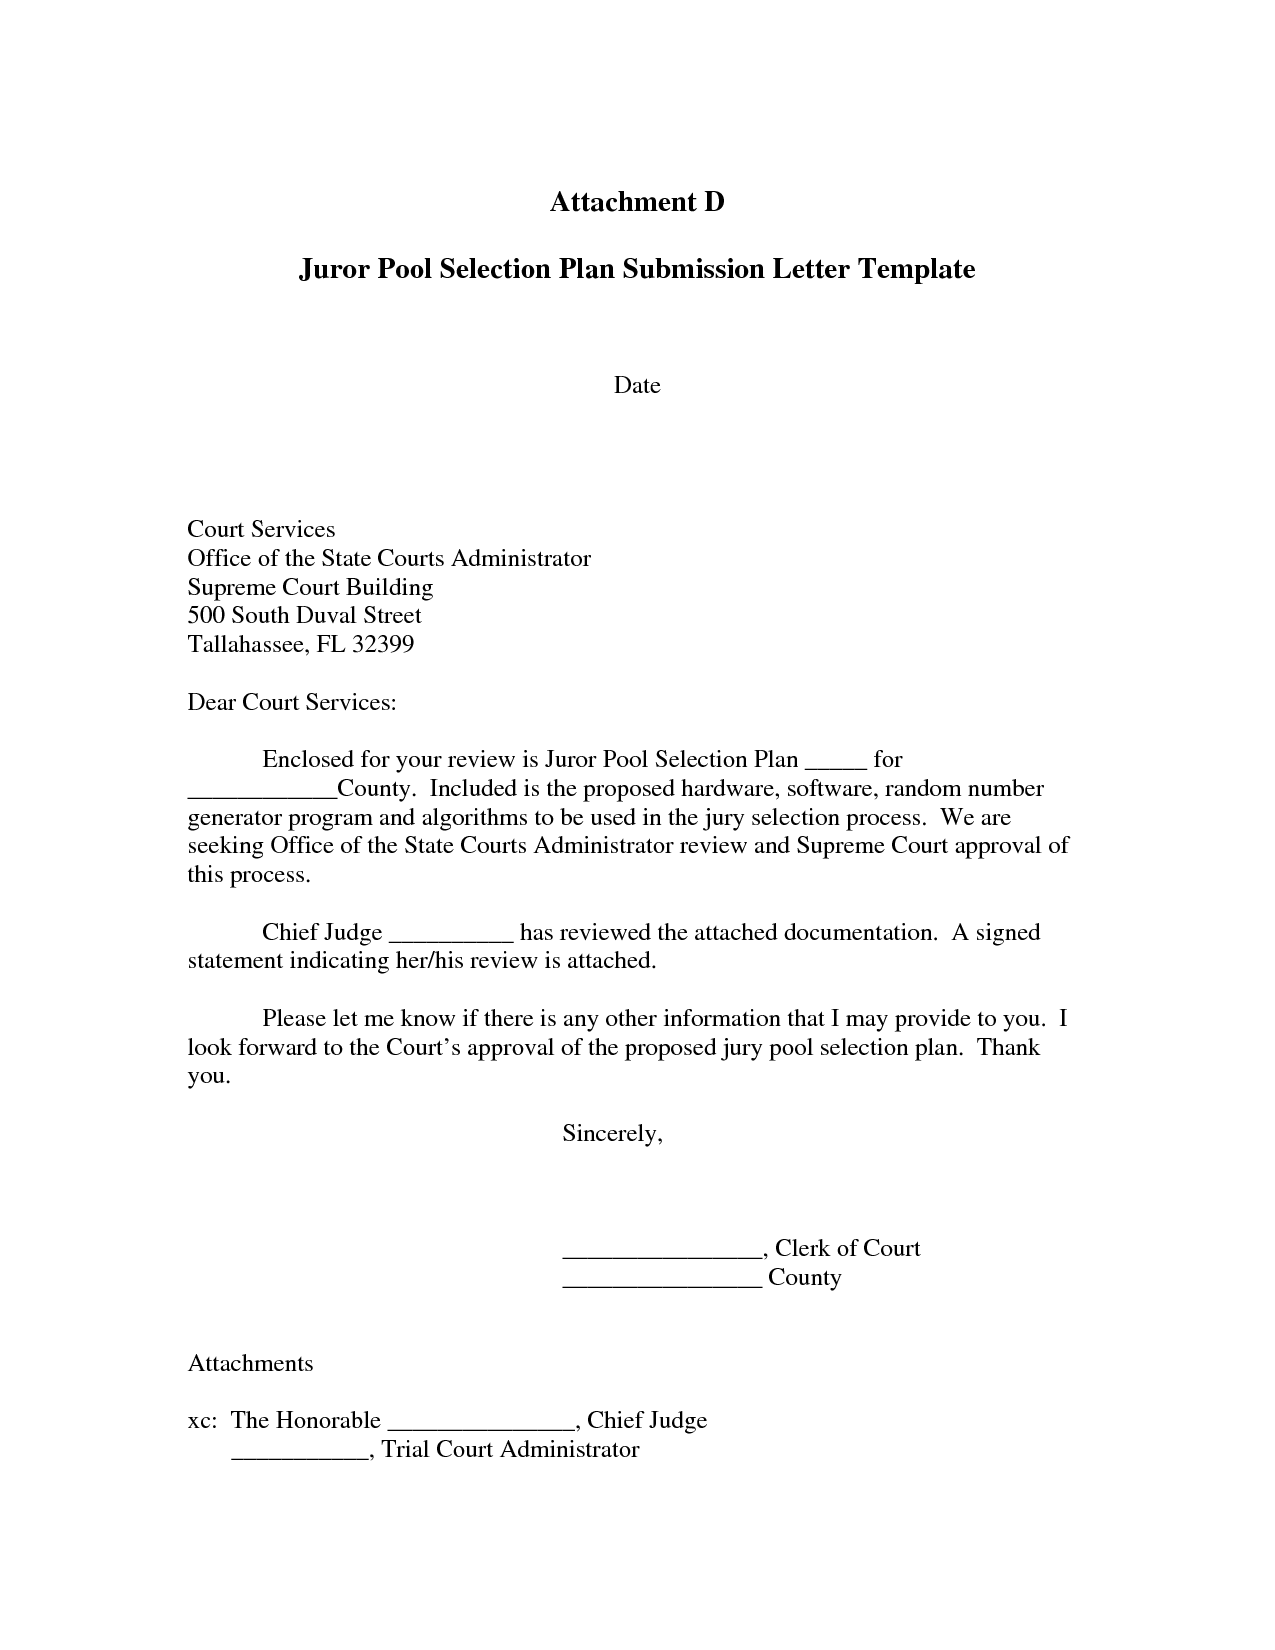 Business Letter Format With Attachments  Howto